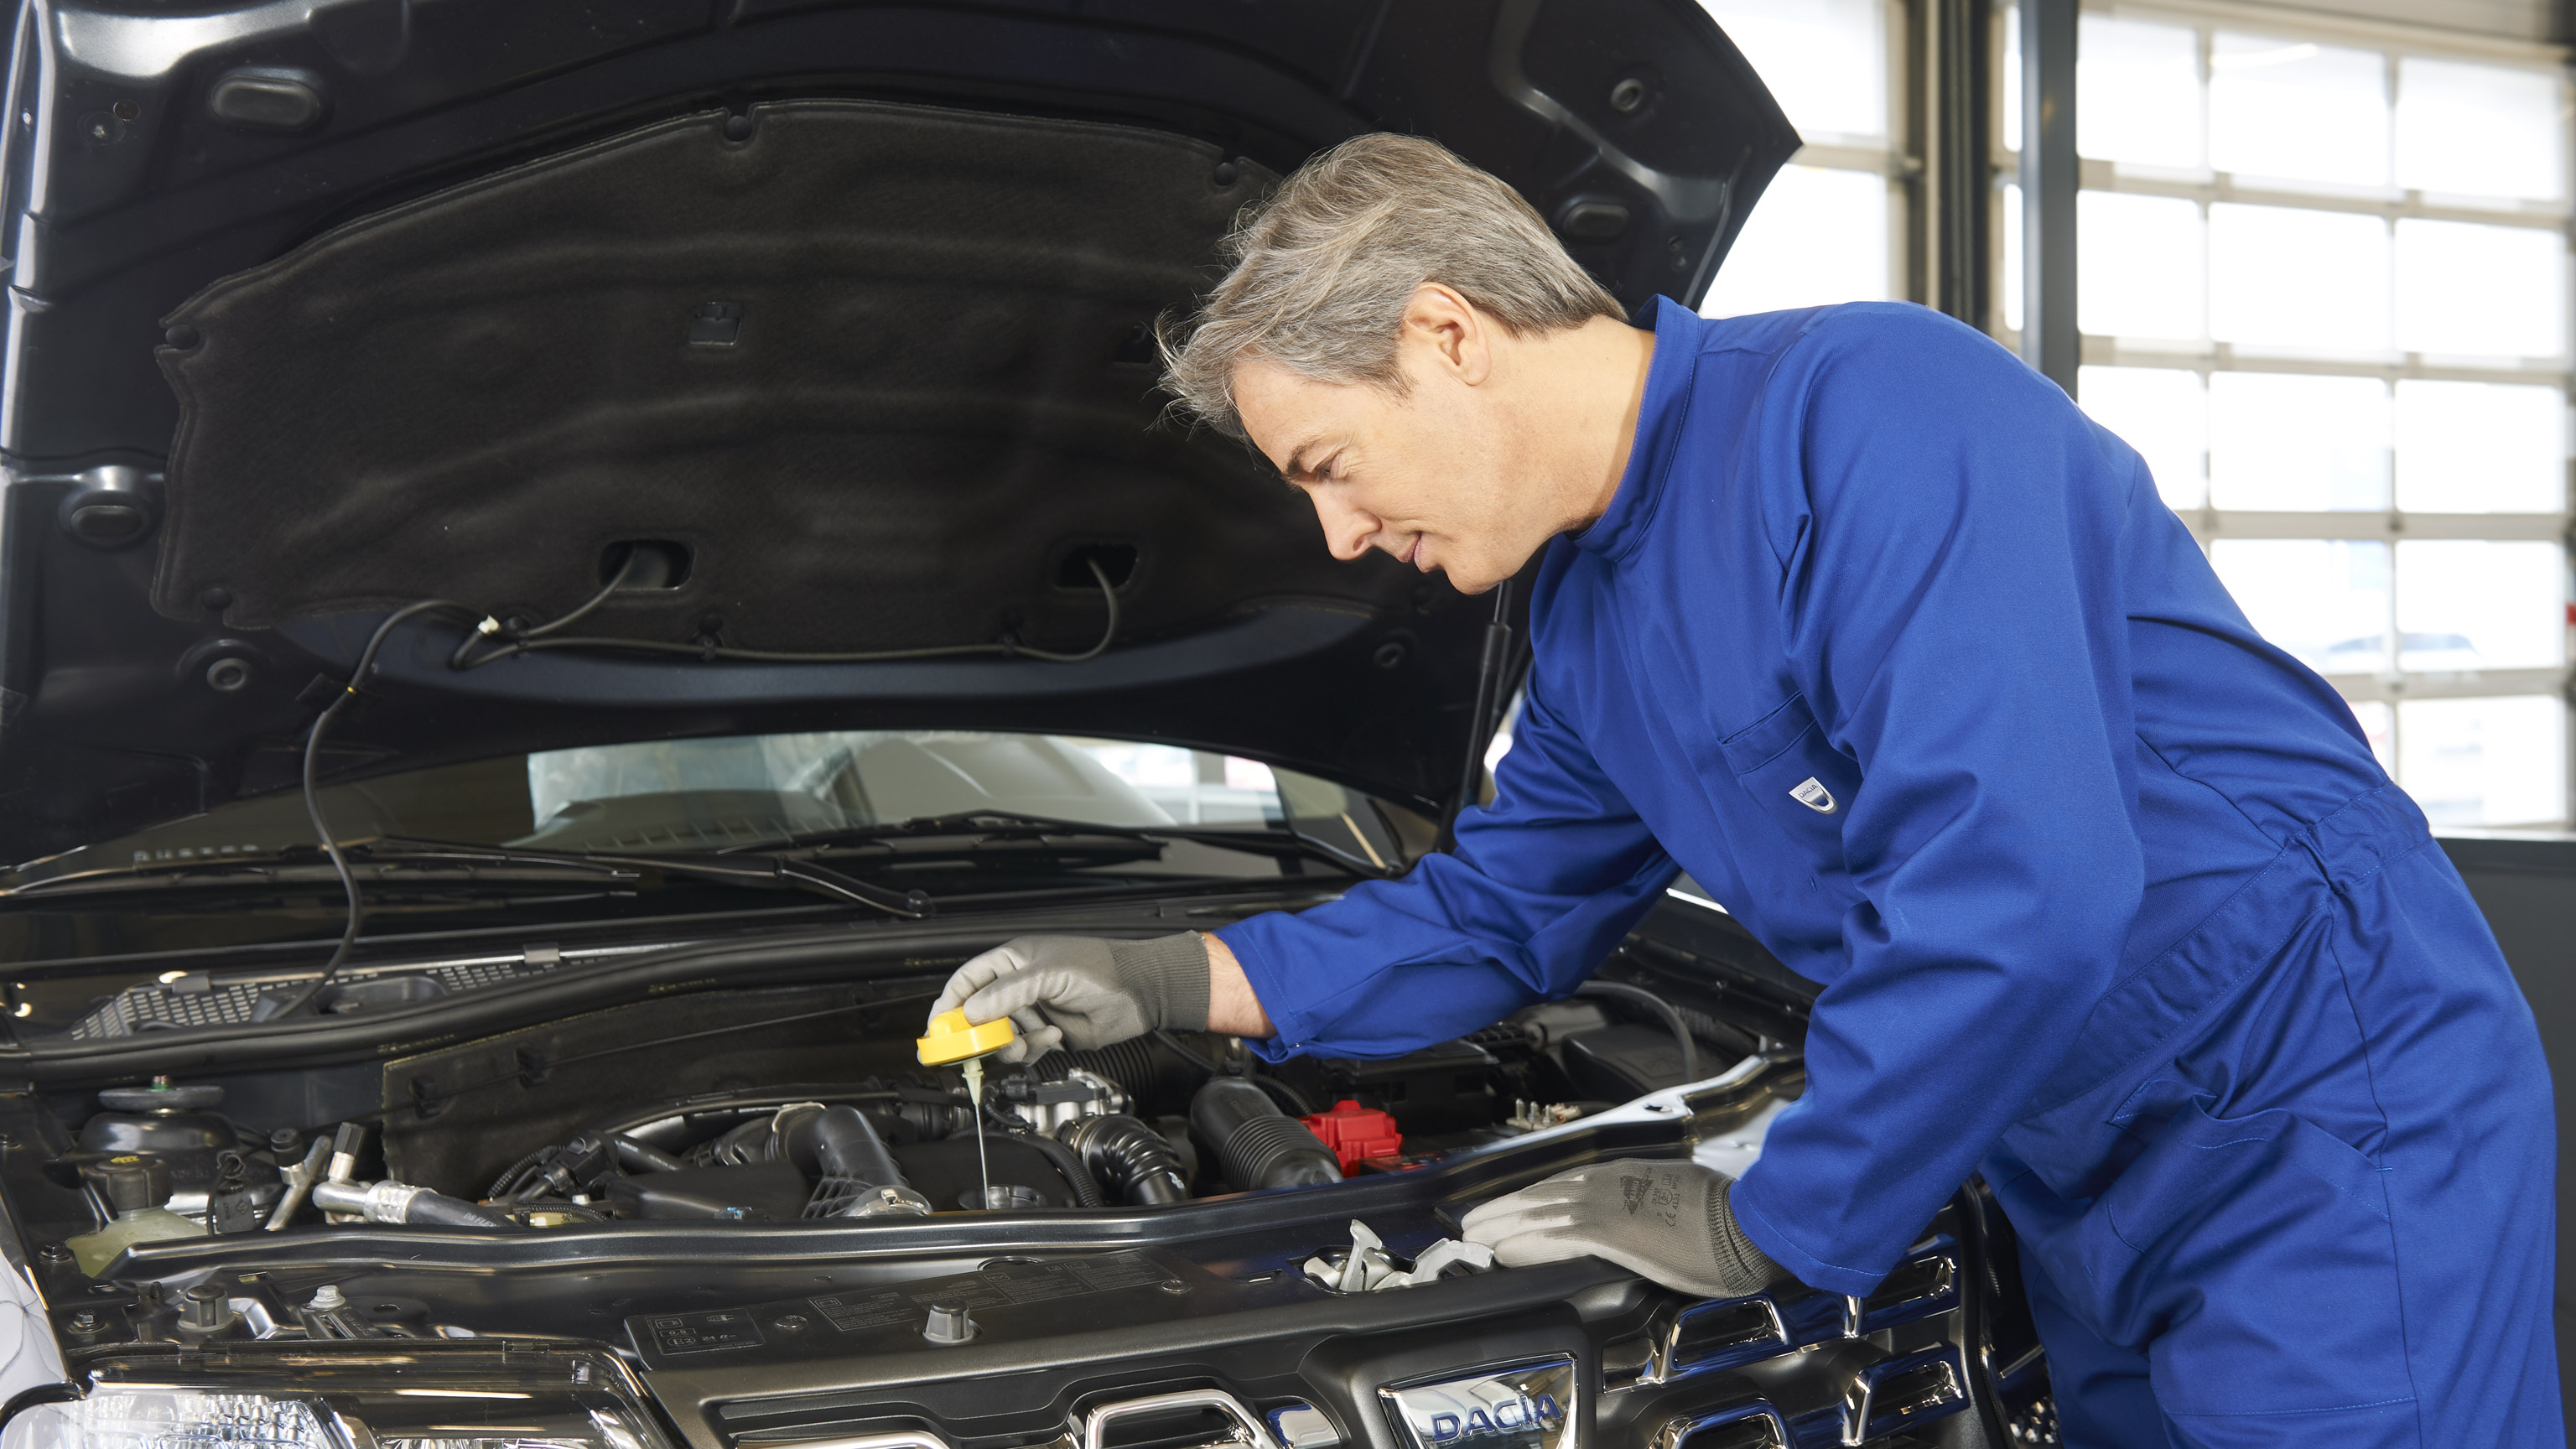 Dacia-services-and-maintenance-ateliers-dacia-repair-016.jpg